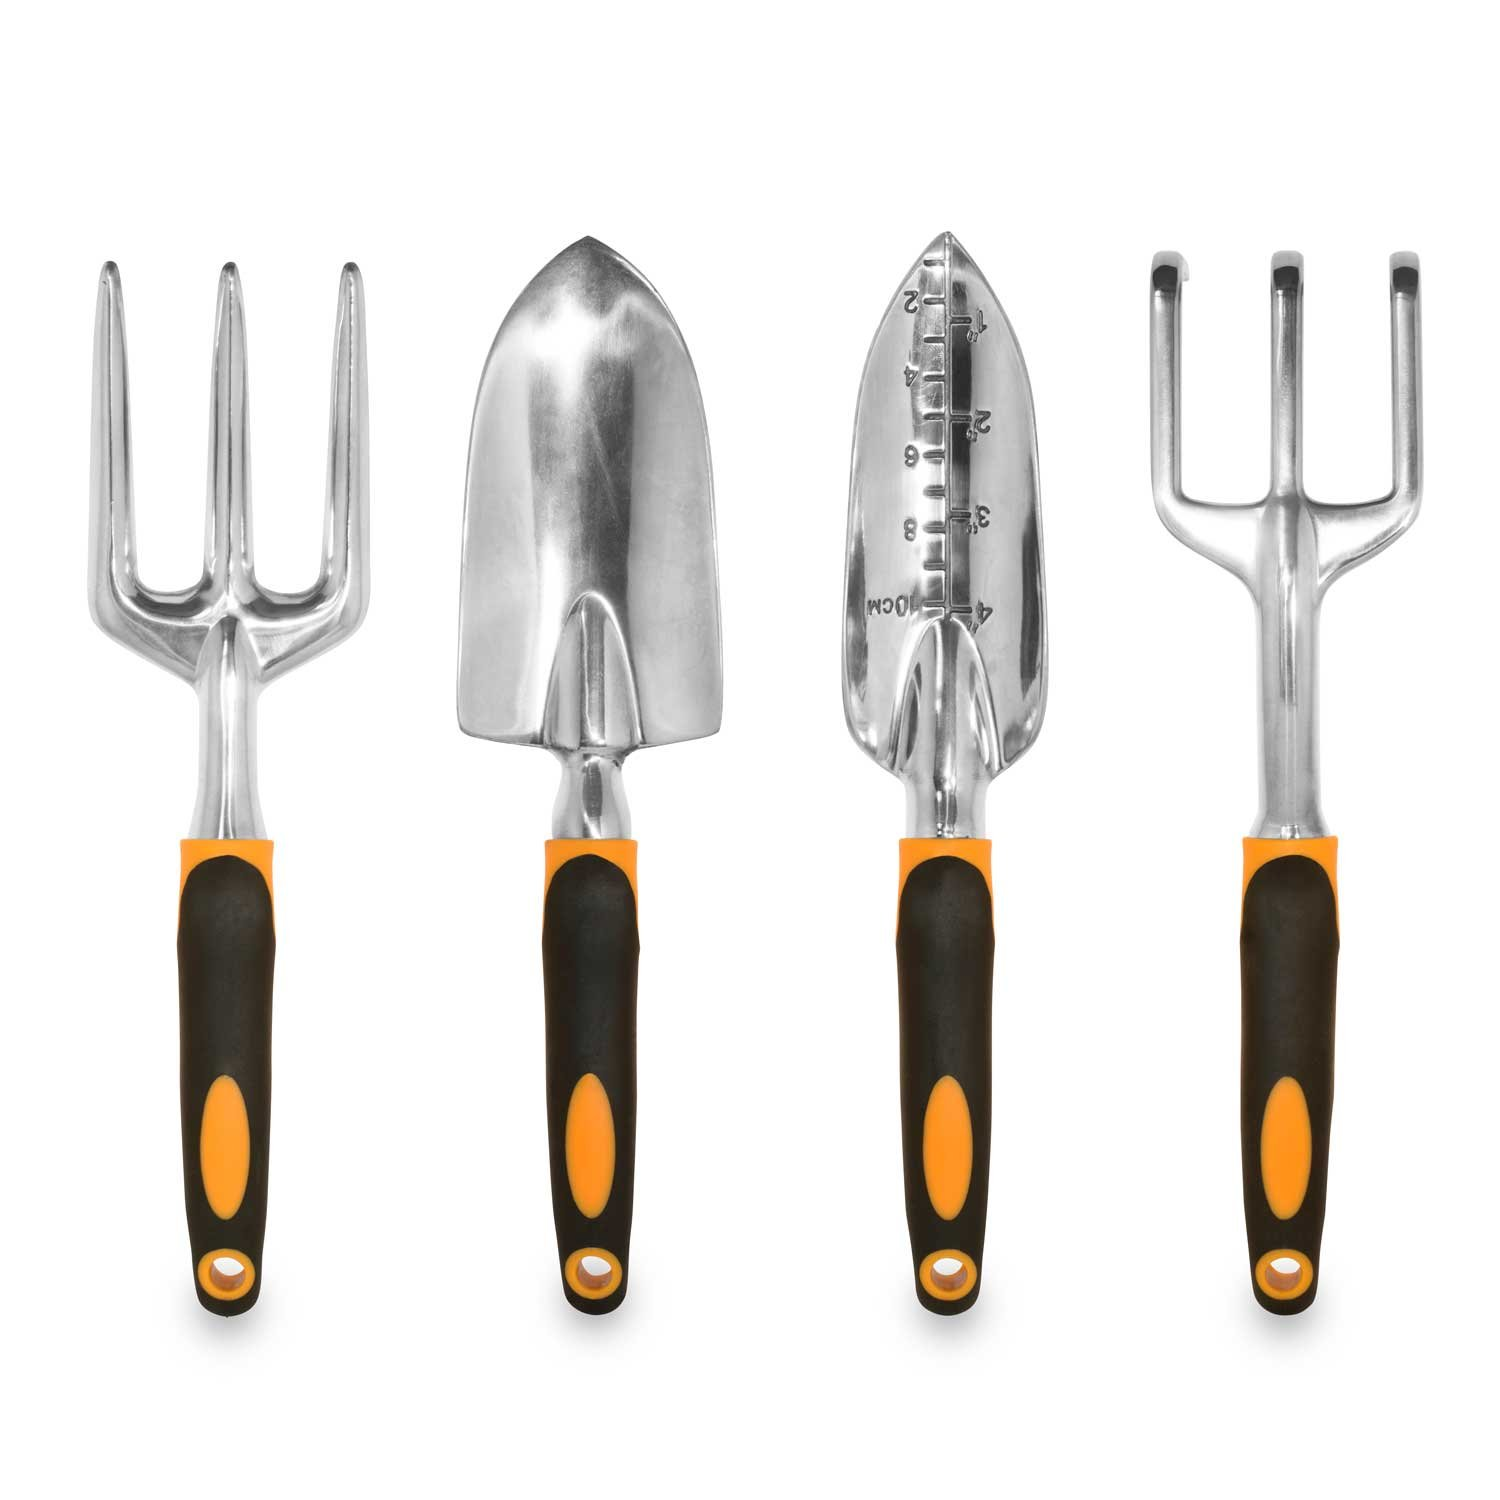 Gardenhome ergonomic garden tools 4 piece tool set ebay for Tools for backyard gardening